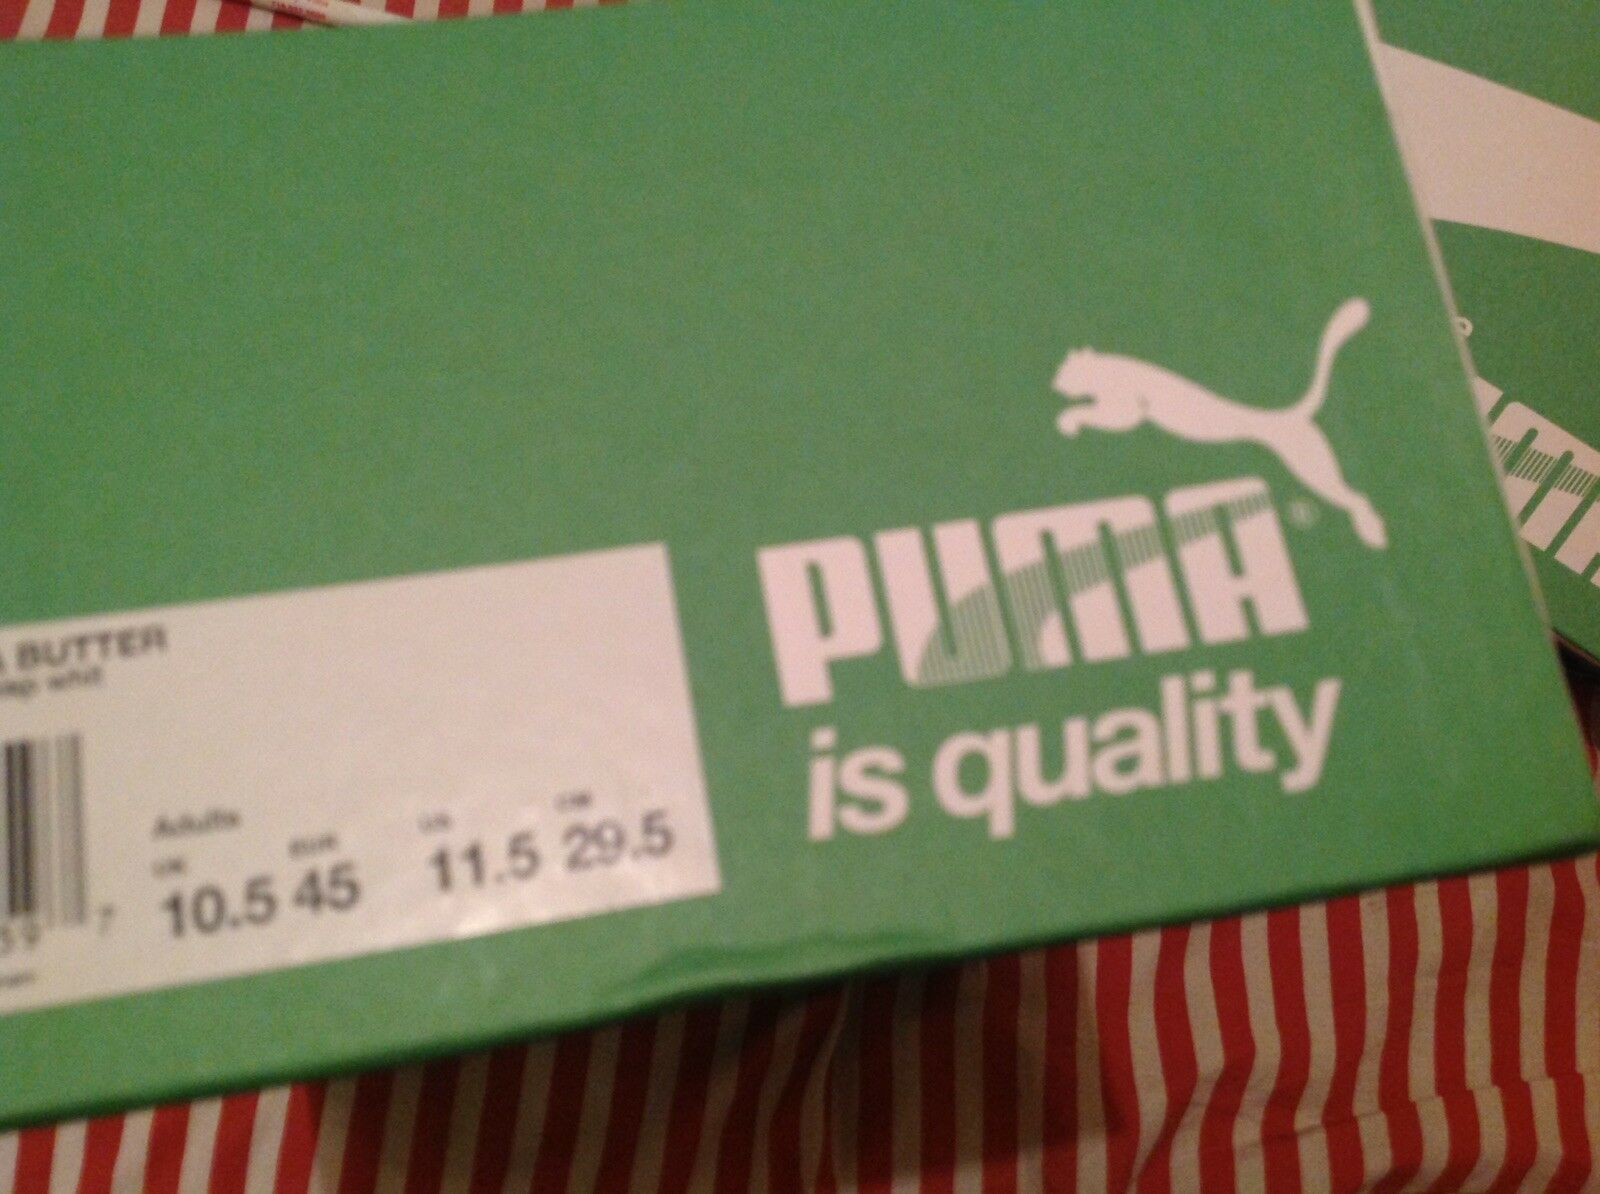 Puma Clydexextra Butter Us11.5 Peacoat